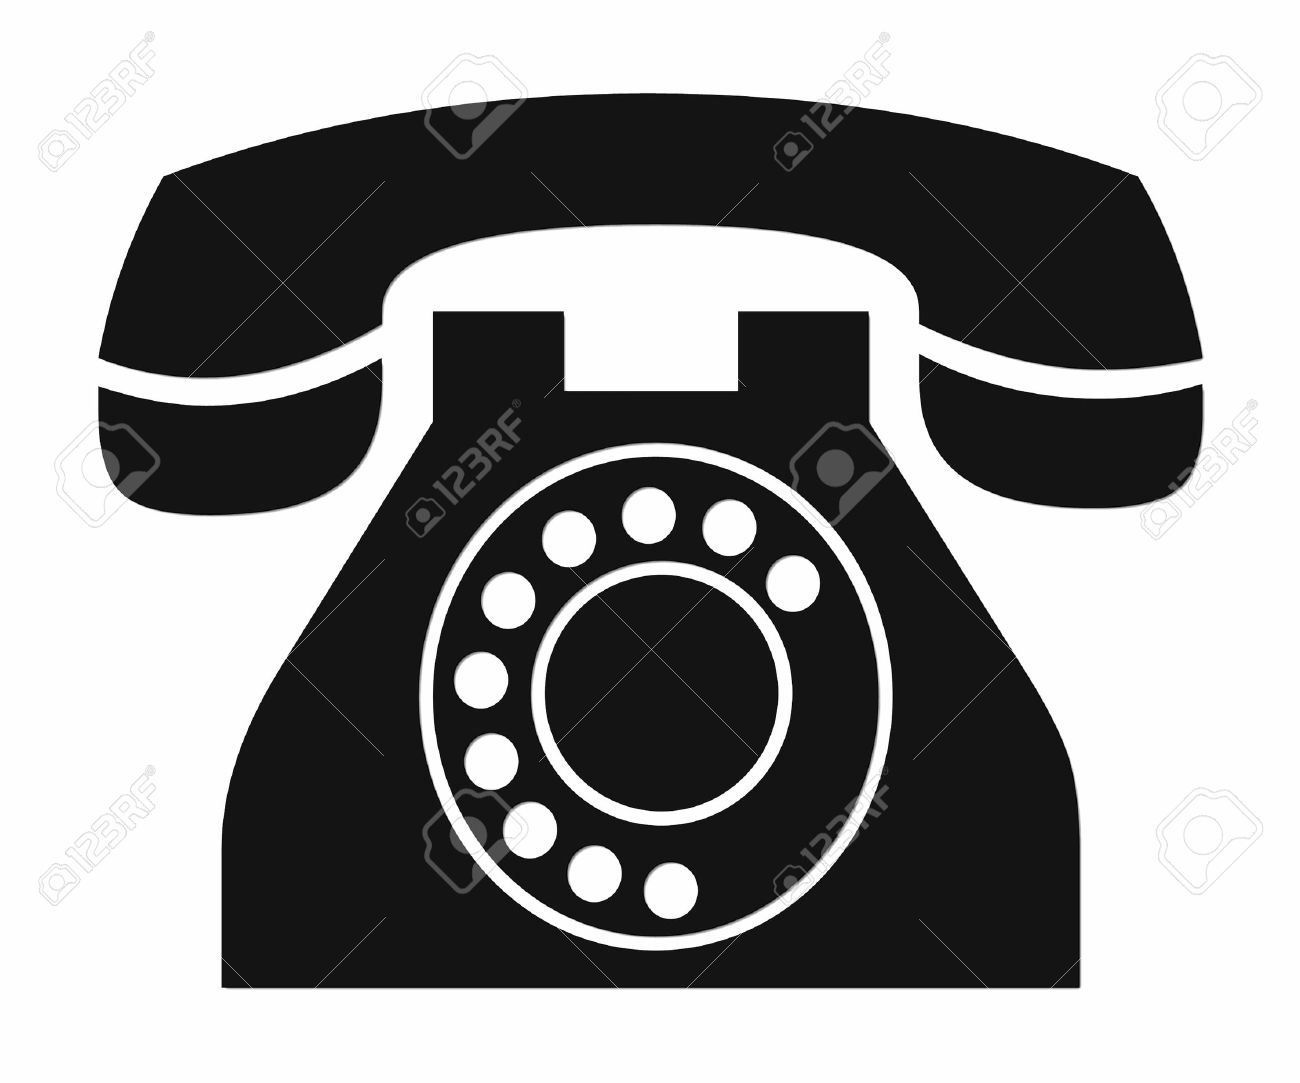 Vintage phone clipart stock photo picture and royalty free image vintage phone clipart stock photo 17109437 sciox Gallery